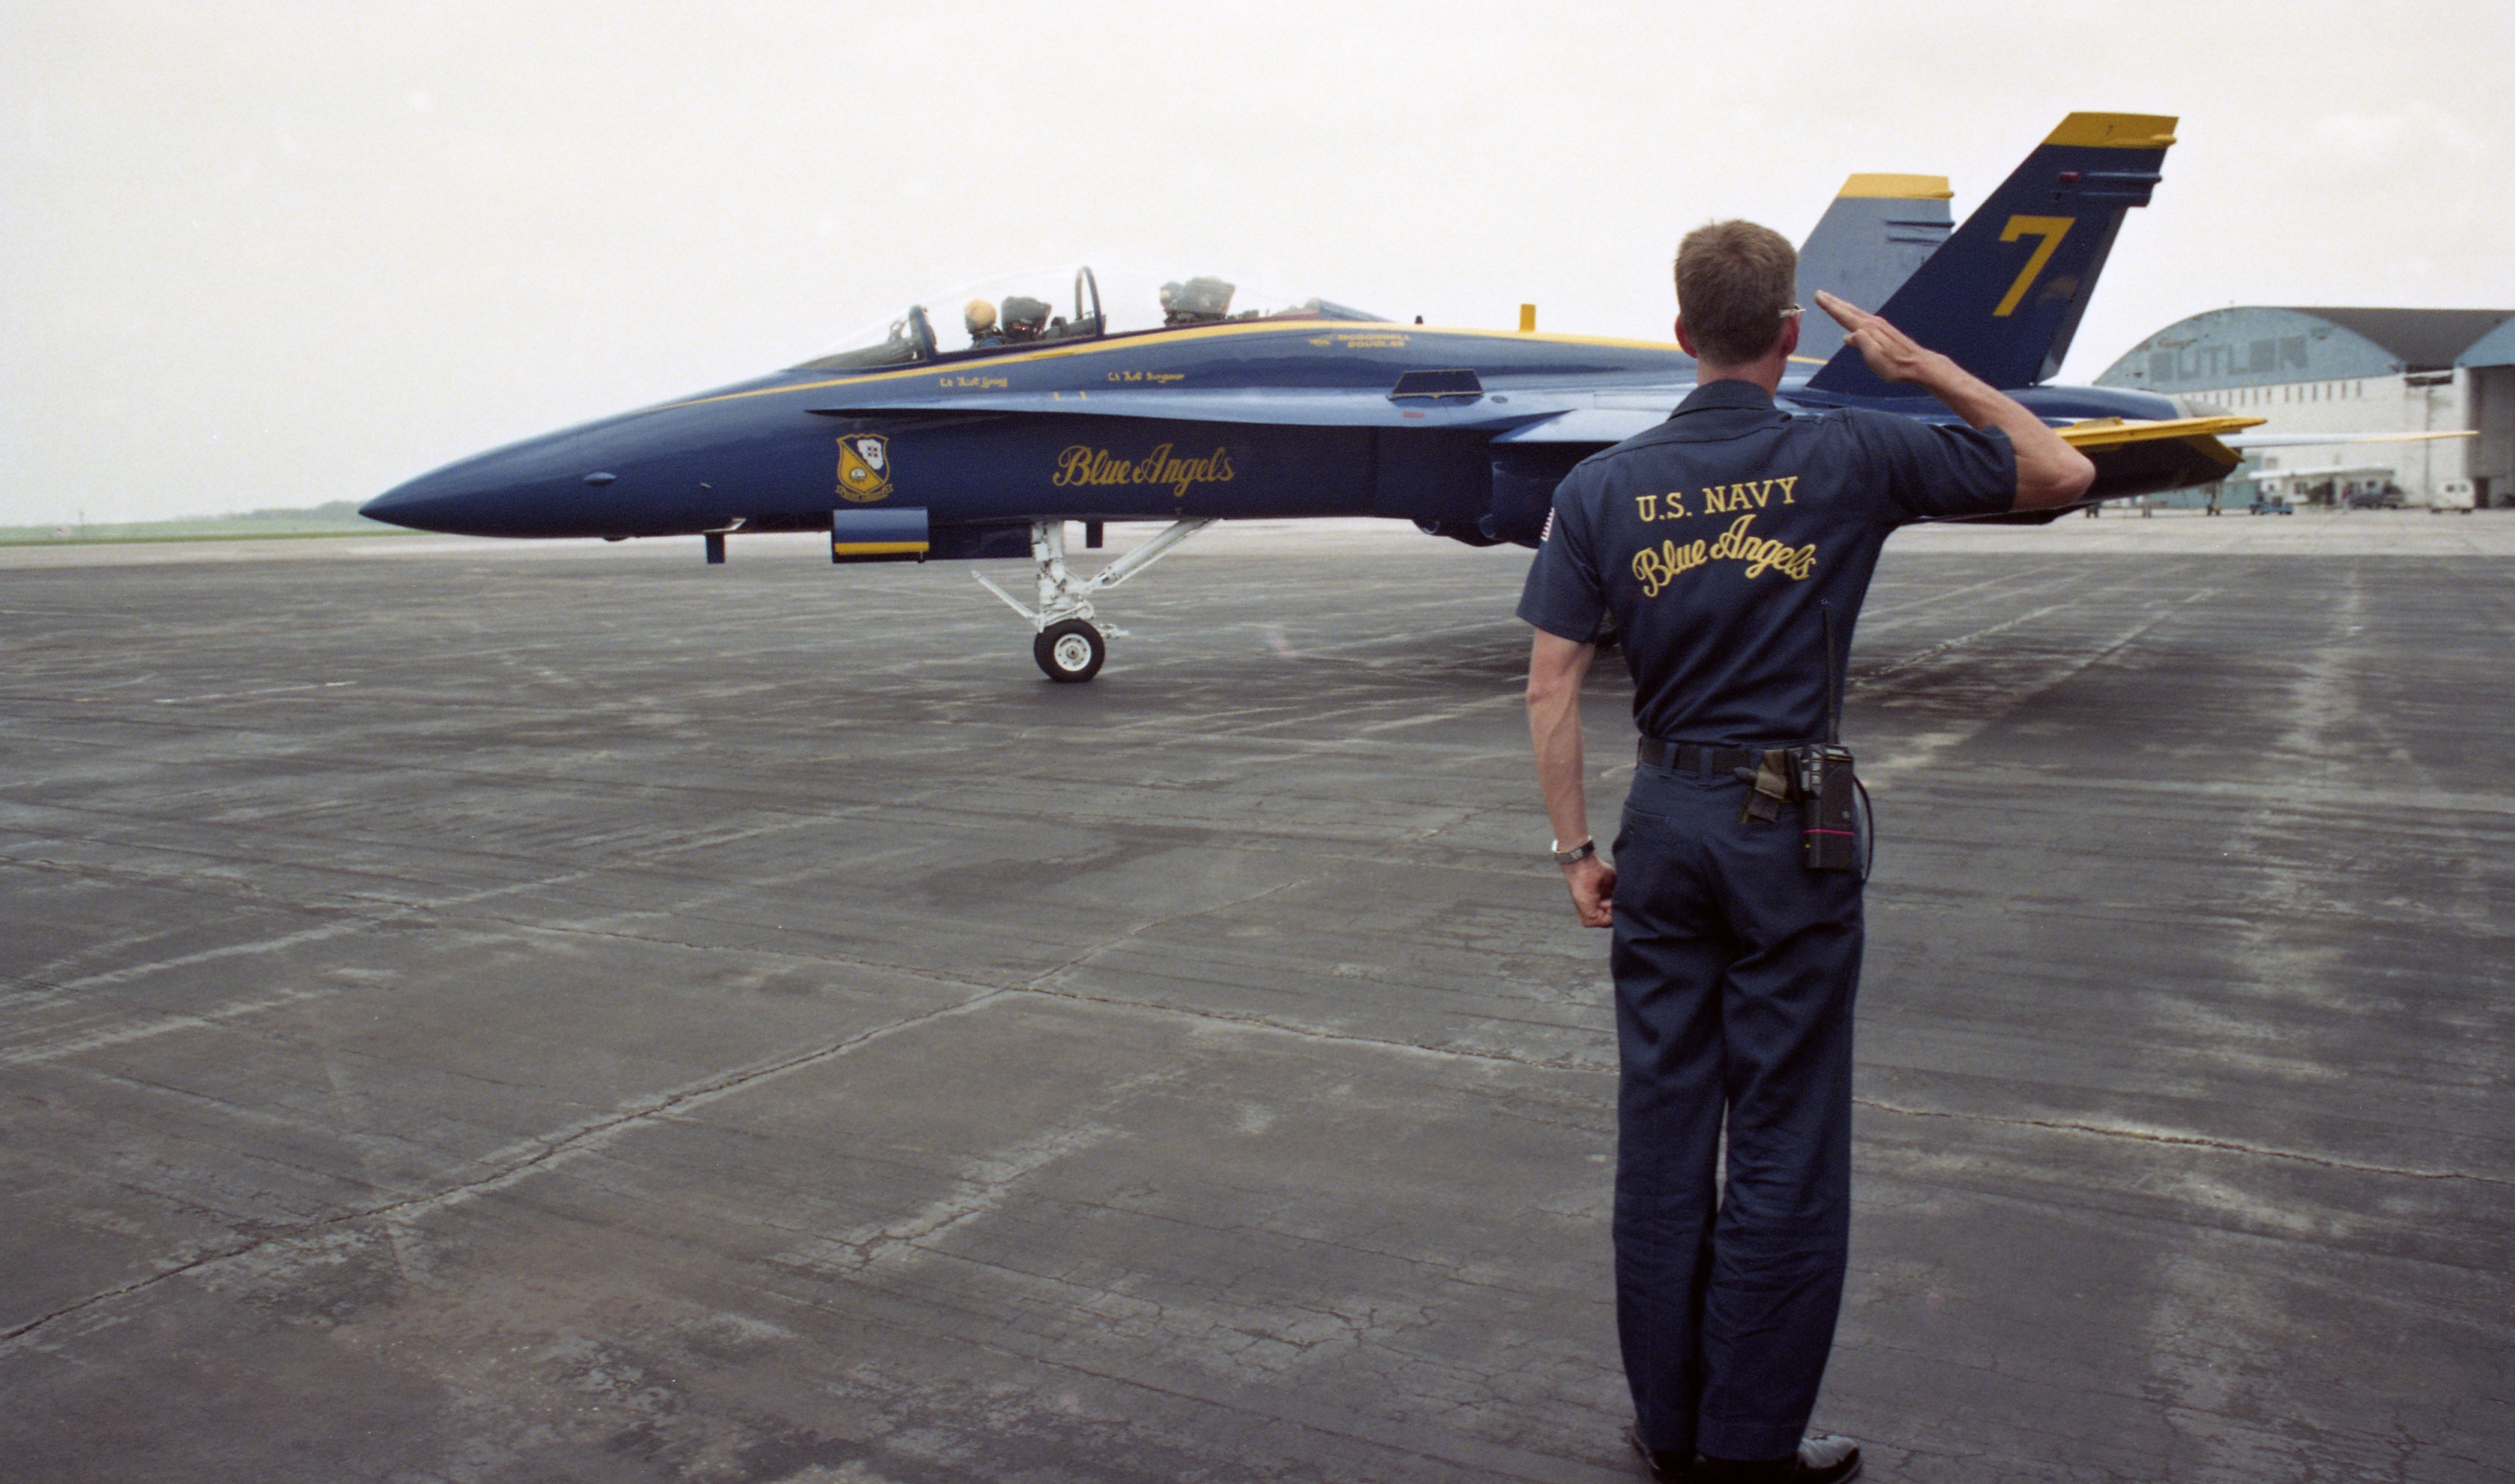 Blue Angels Crew Chief Greg Braden Salutes The Plane Carrying Ann Arbor News Reporter Pat Windsor, May 1993 image